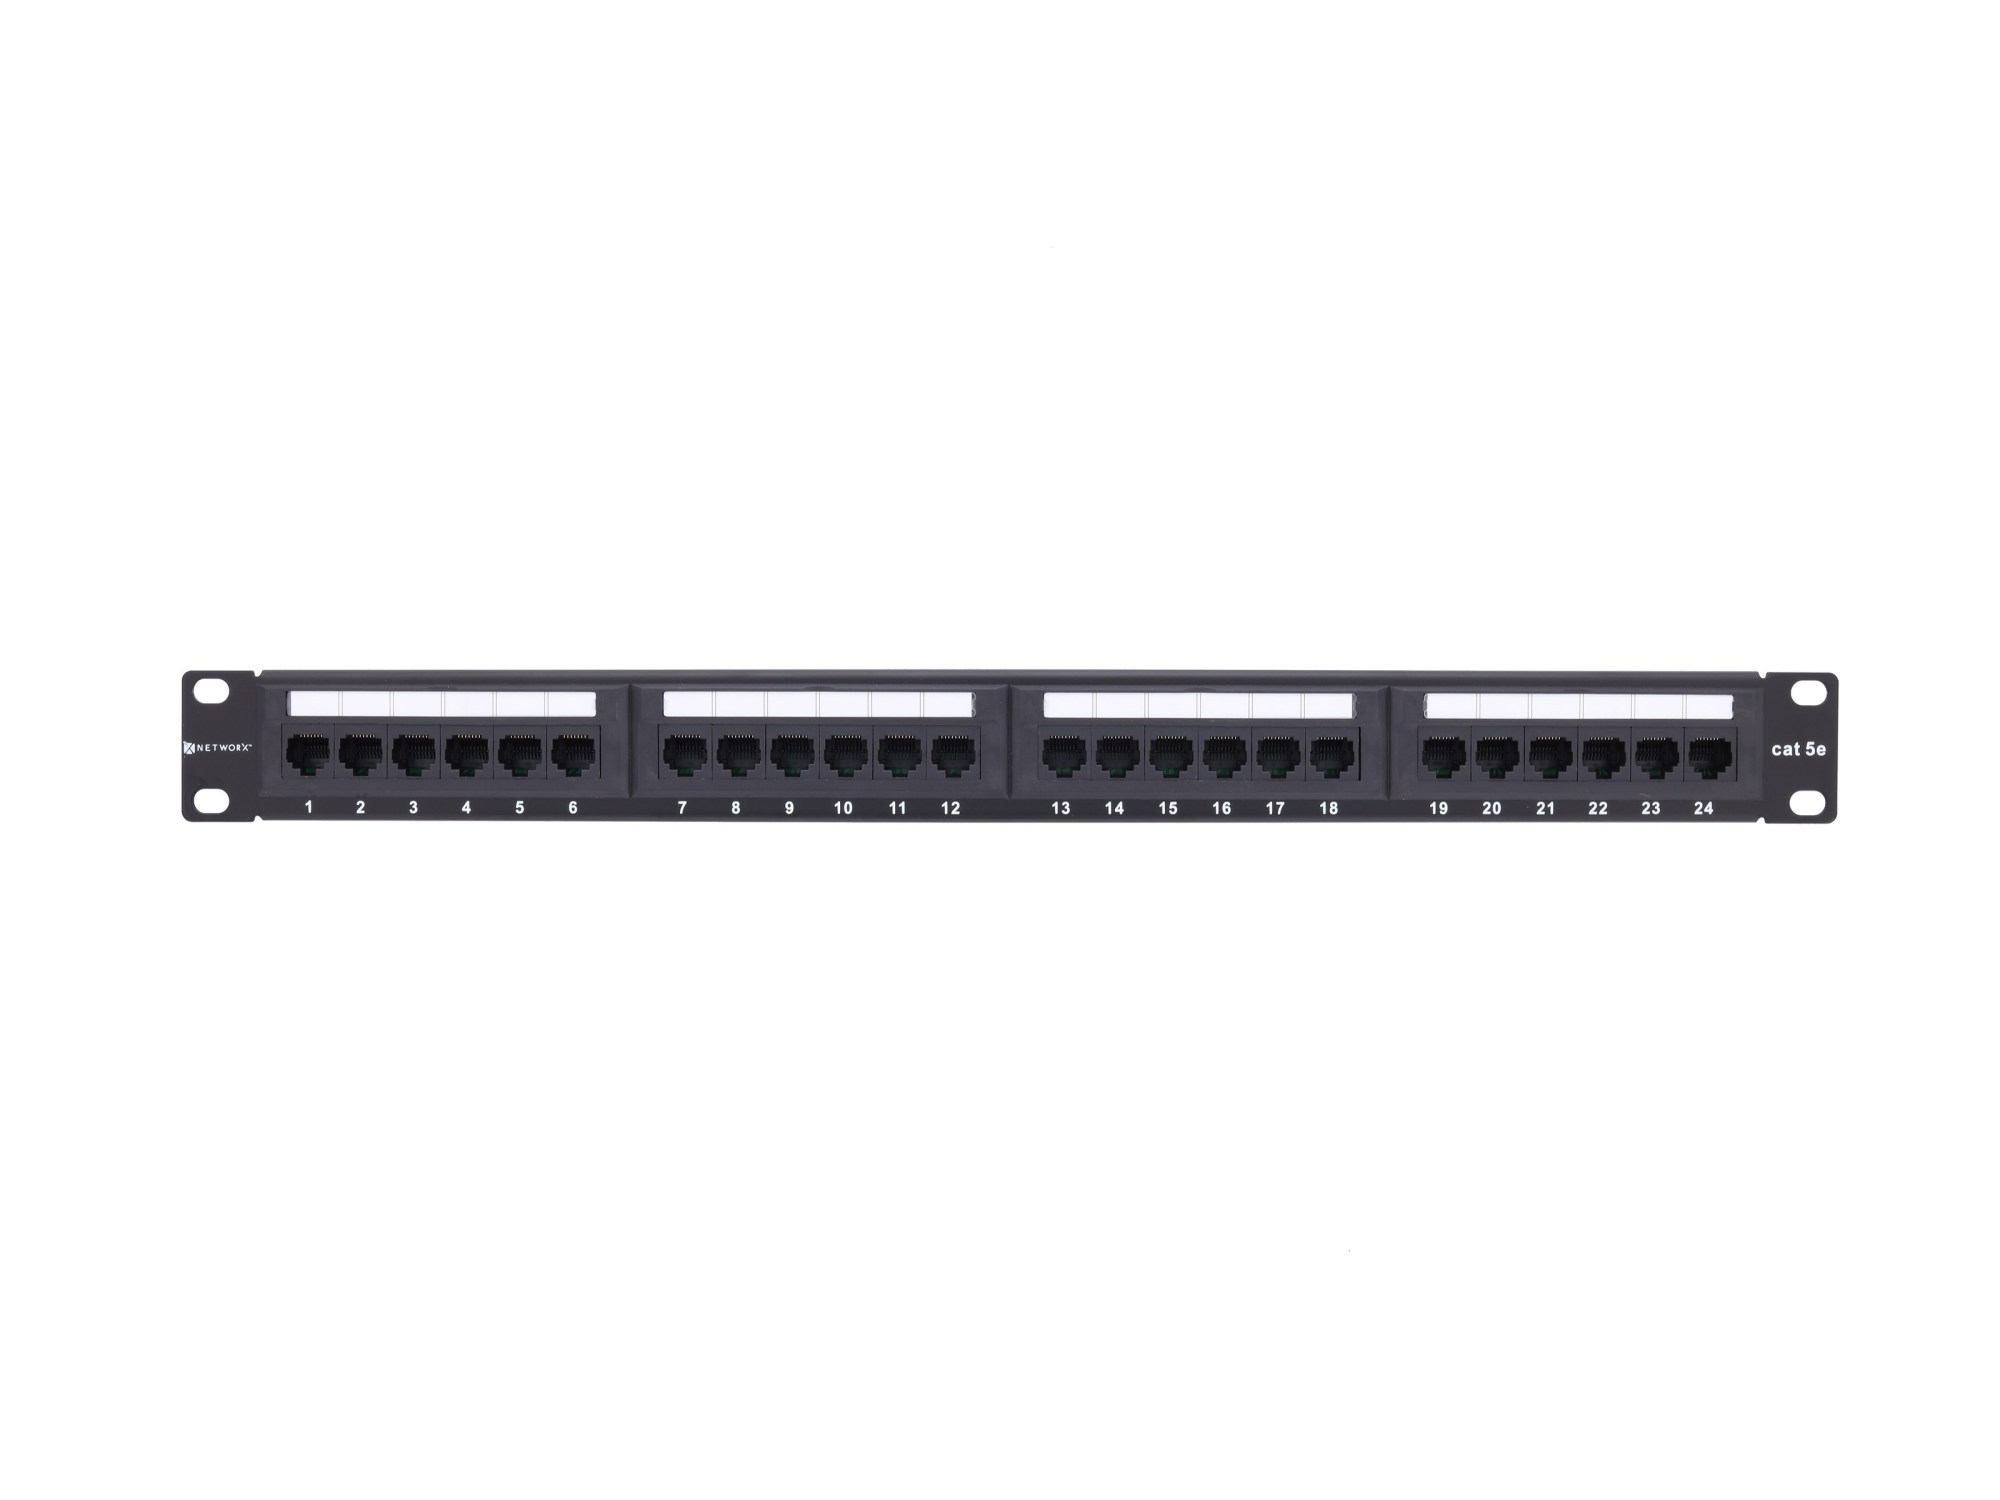 hight resolution of 24 port cat5e rack mount patch panel 1u computer cable store cat5e 24 port rj45 wiring patch panel